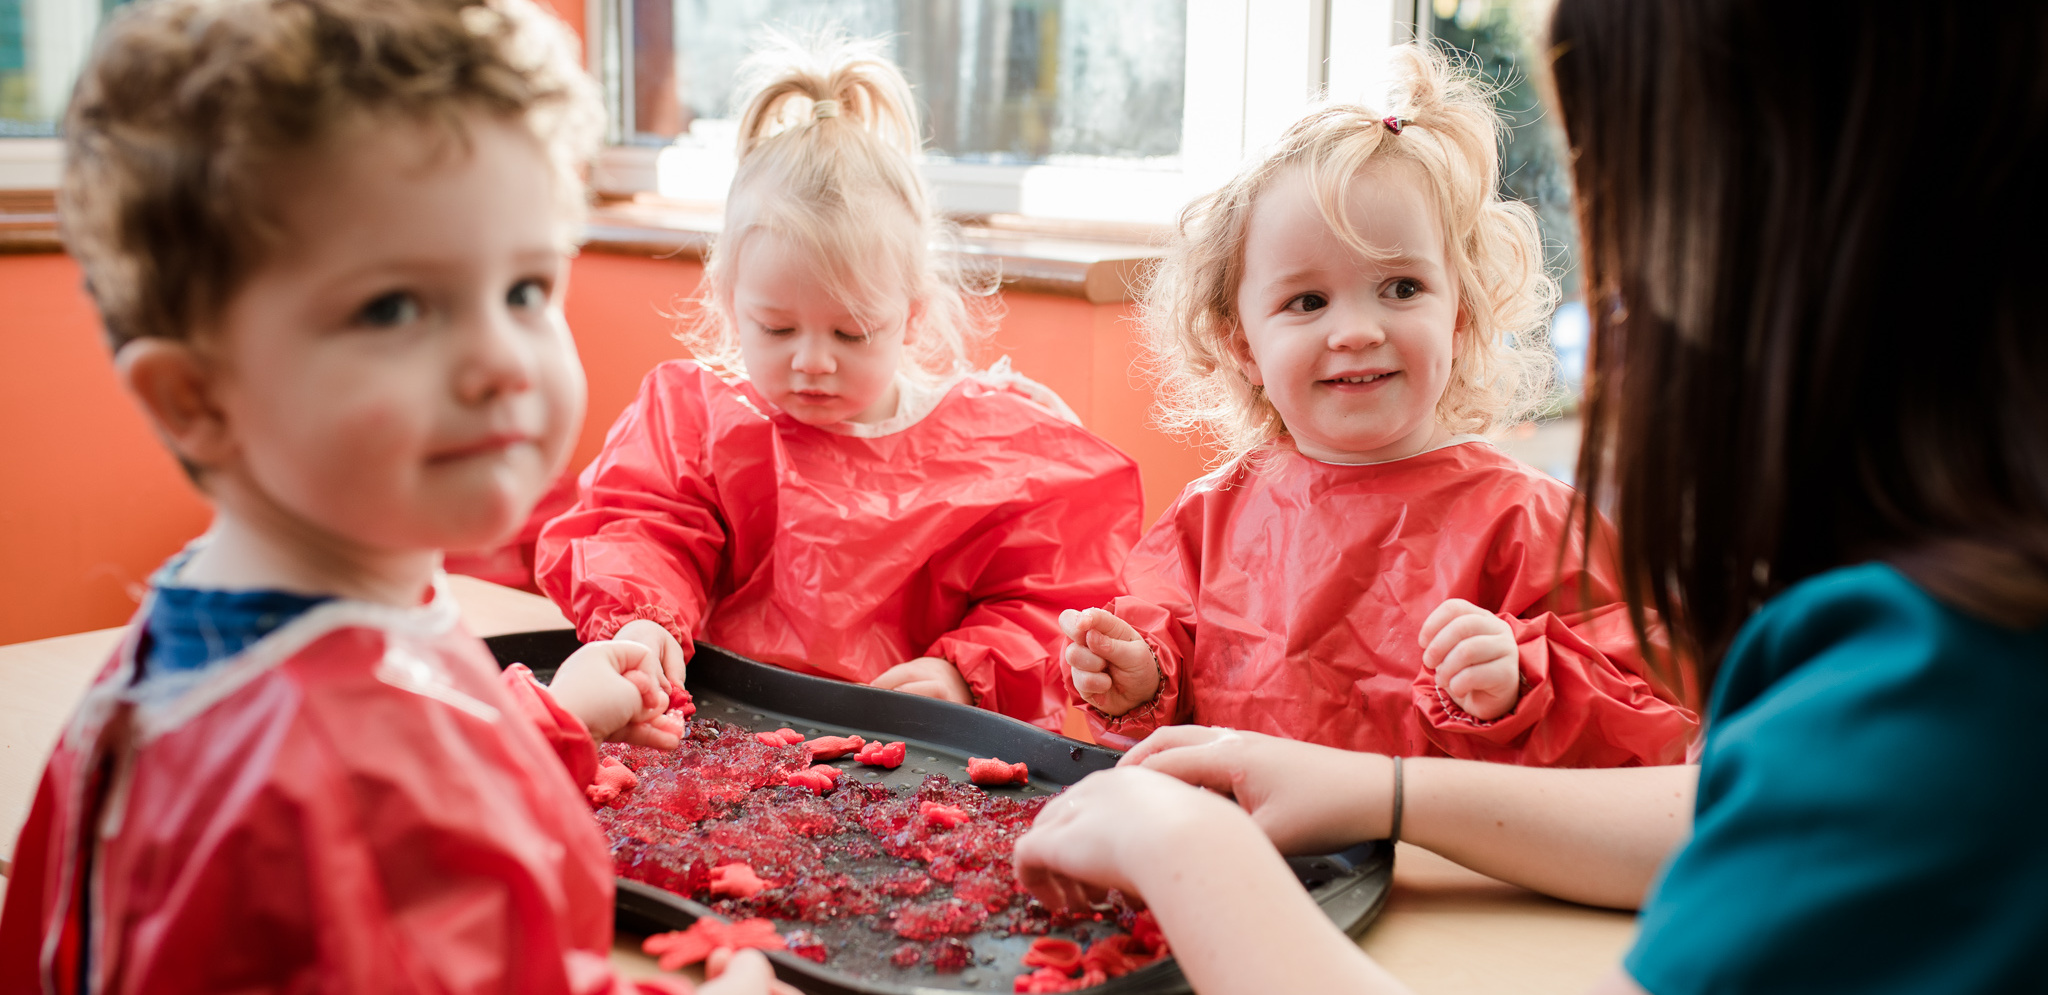 Children in aprons making food